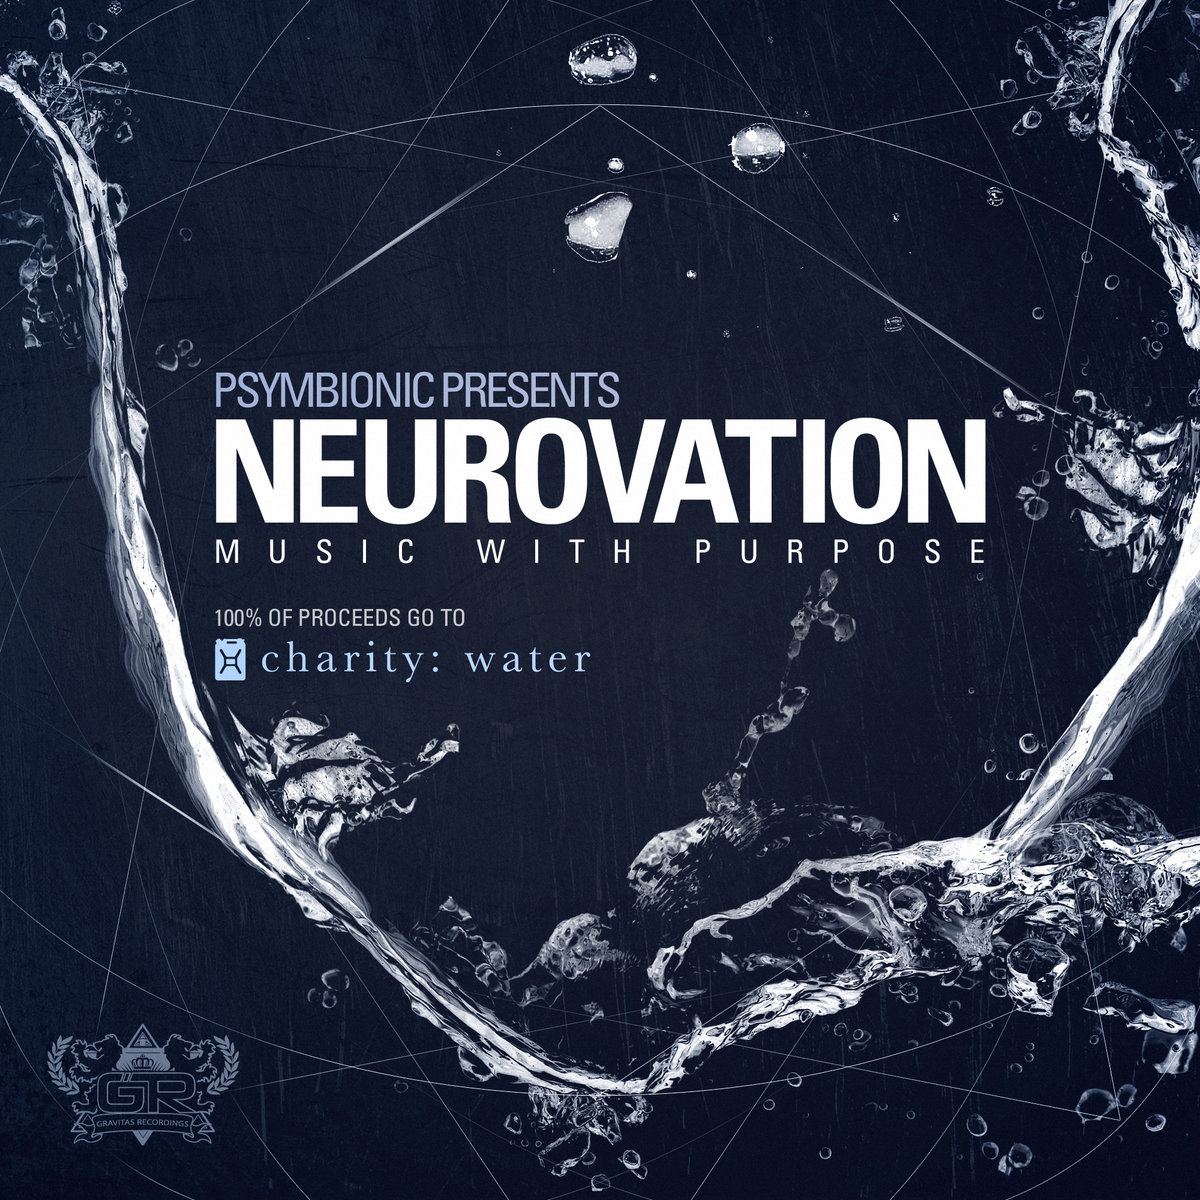 SPL & Eye D - Incoming @ 'Psymbionic Presents: Neurovation' album (cryptex, glitch hop)